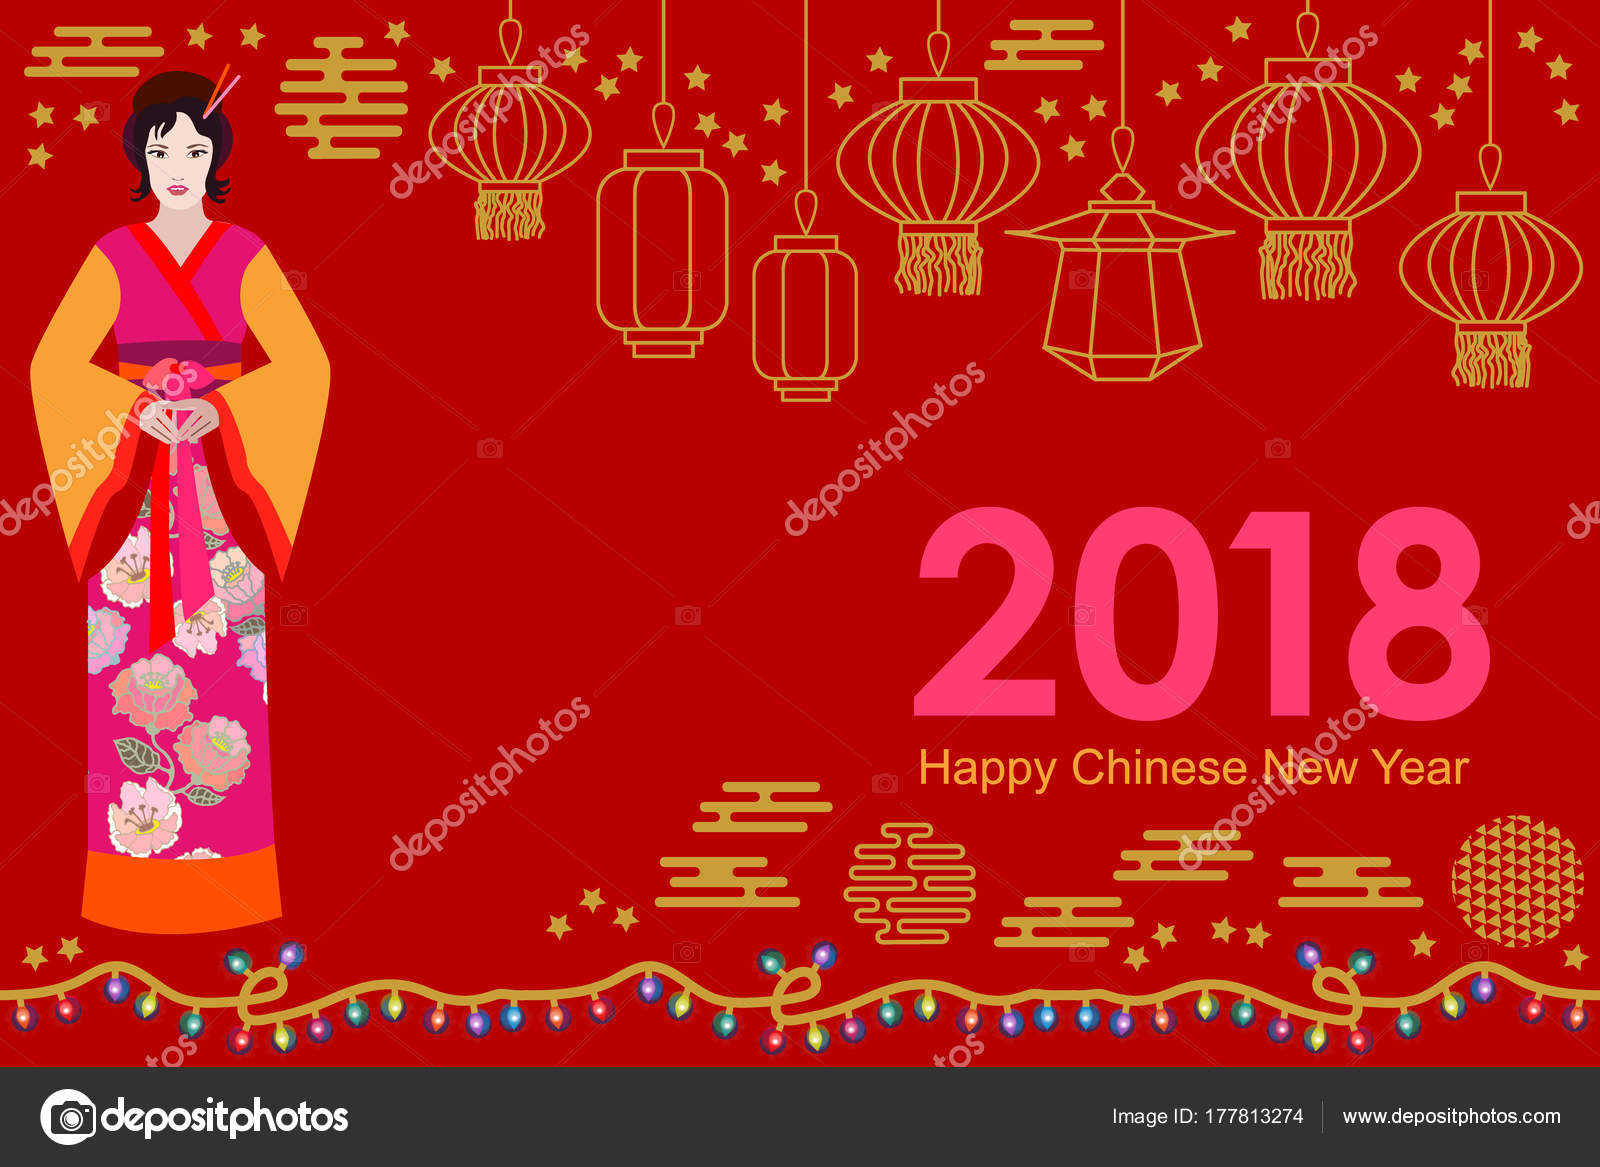 happy chinese new year card beautiful asian girl in festive dress and oriental lanterns on